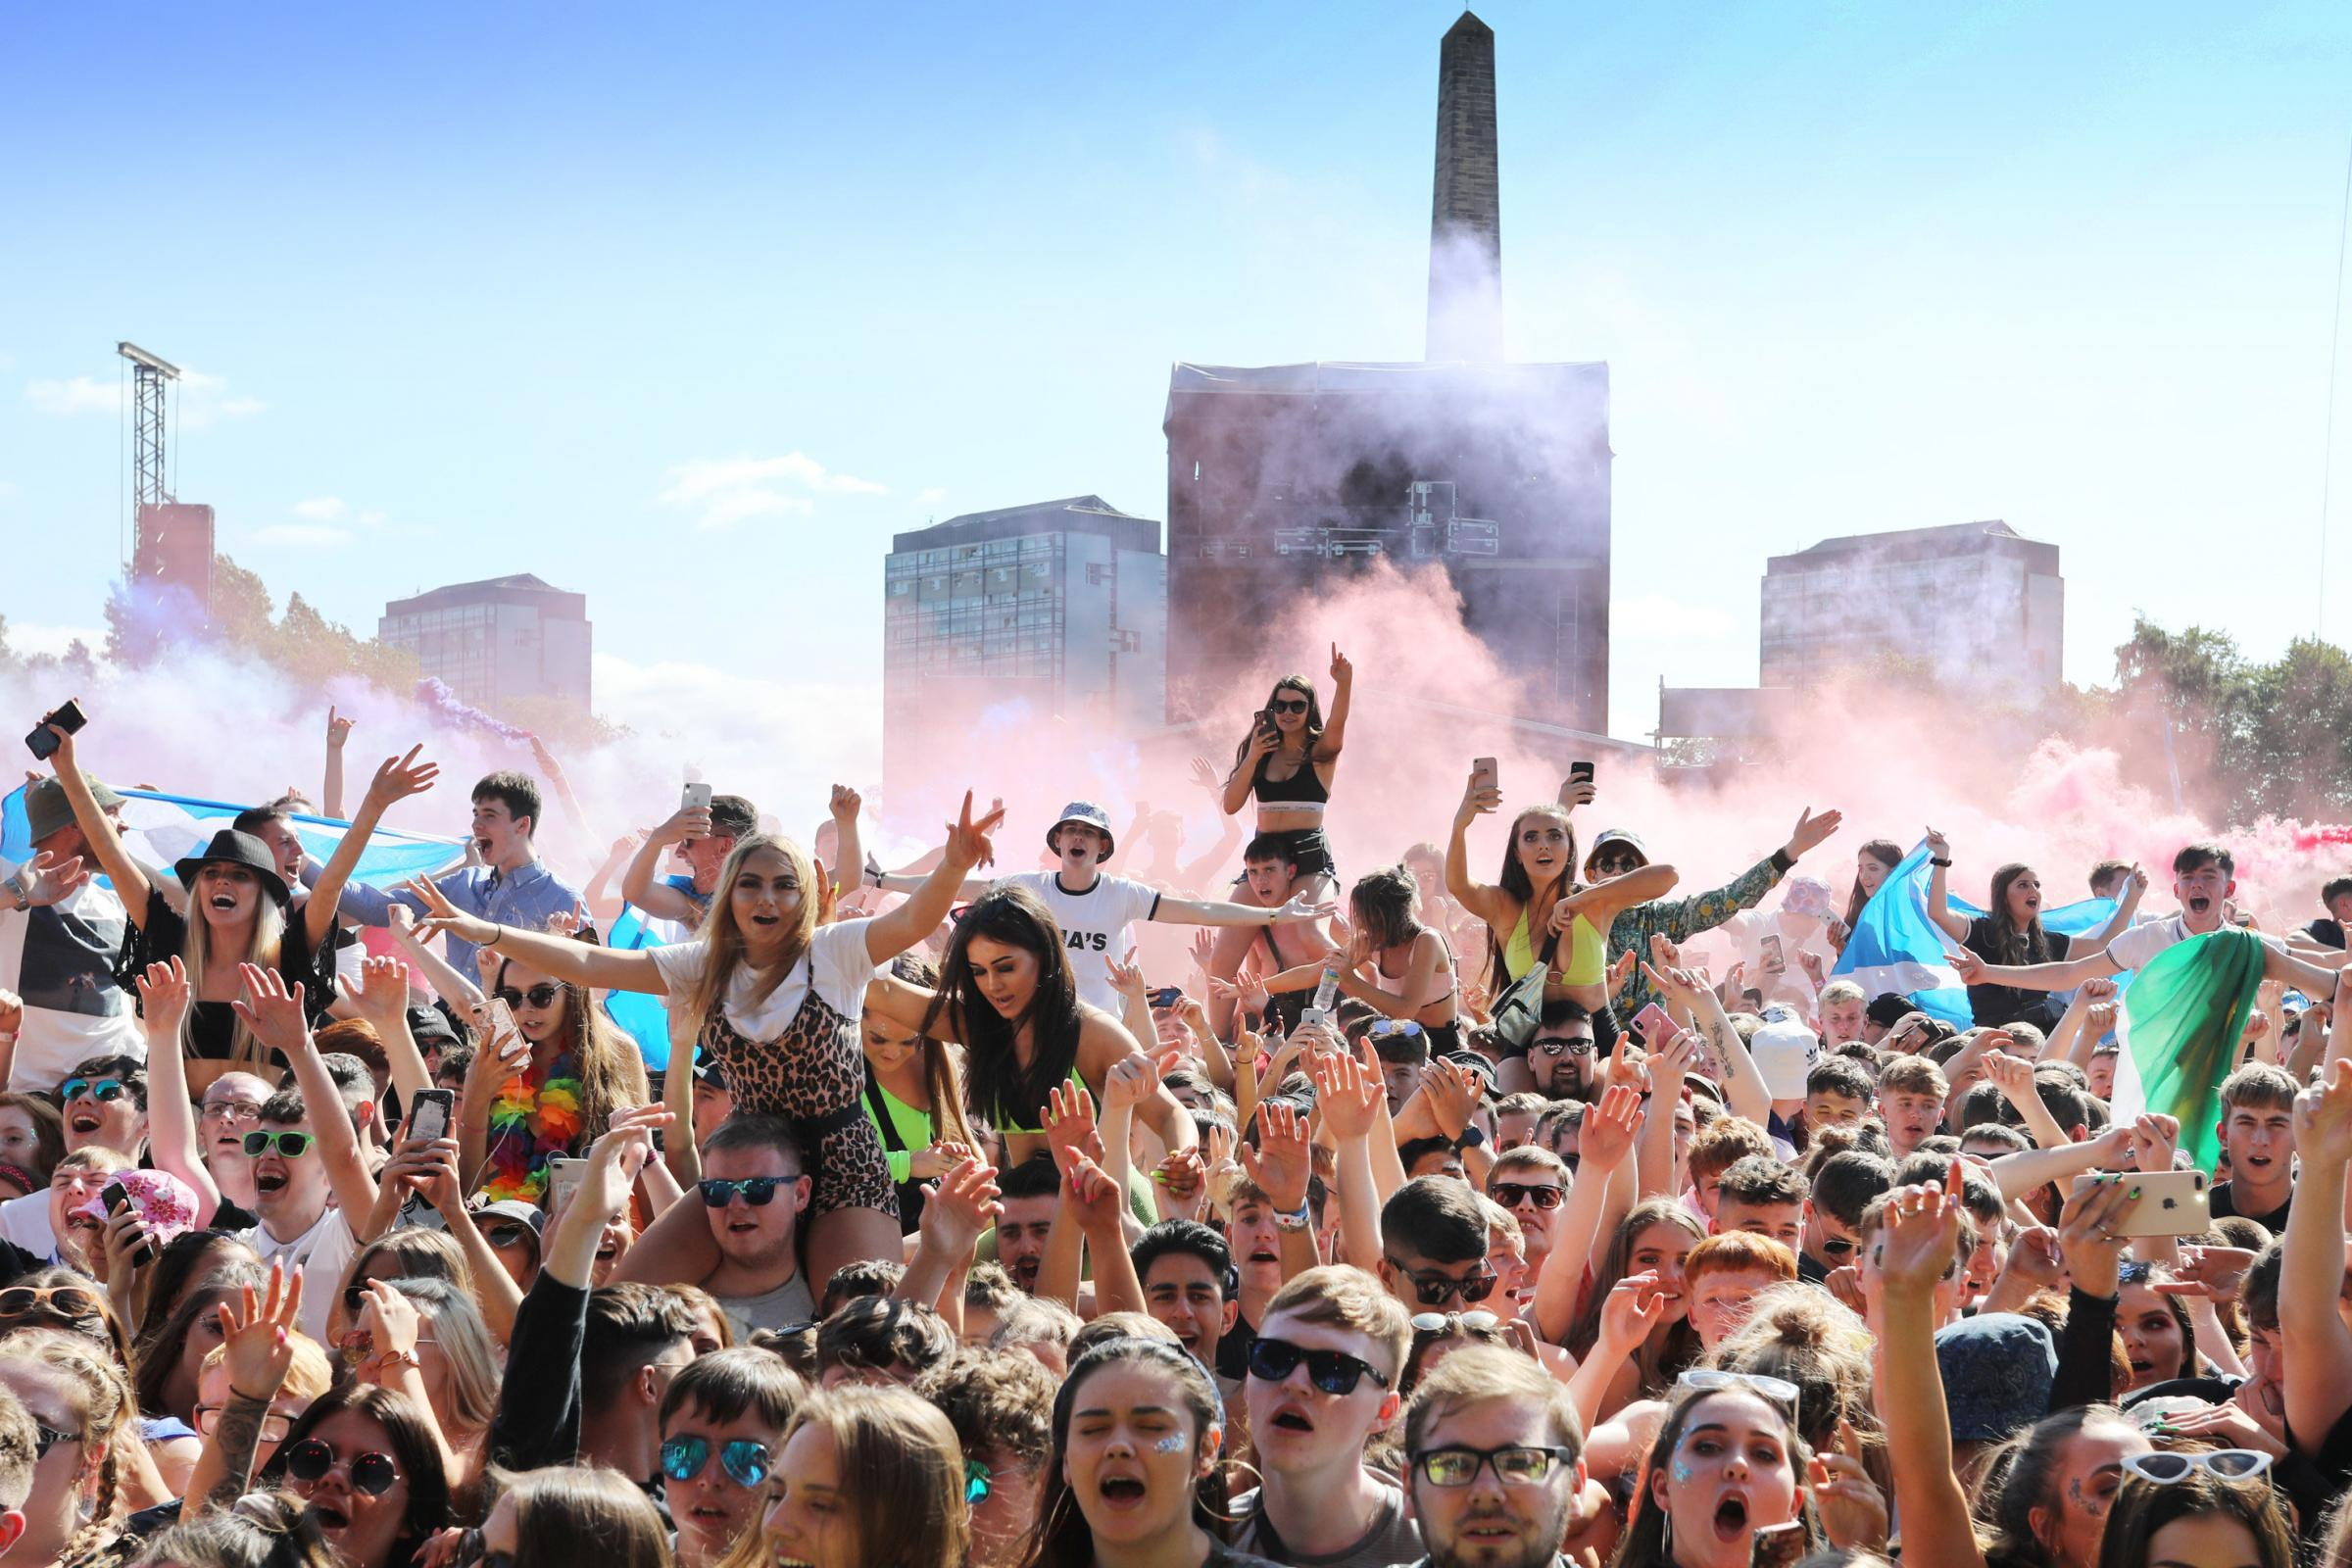 Scots sizzle and dance in the sun at Glasgow's TRNSMT